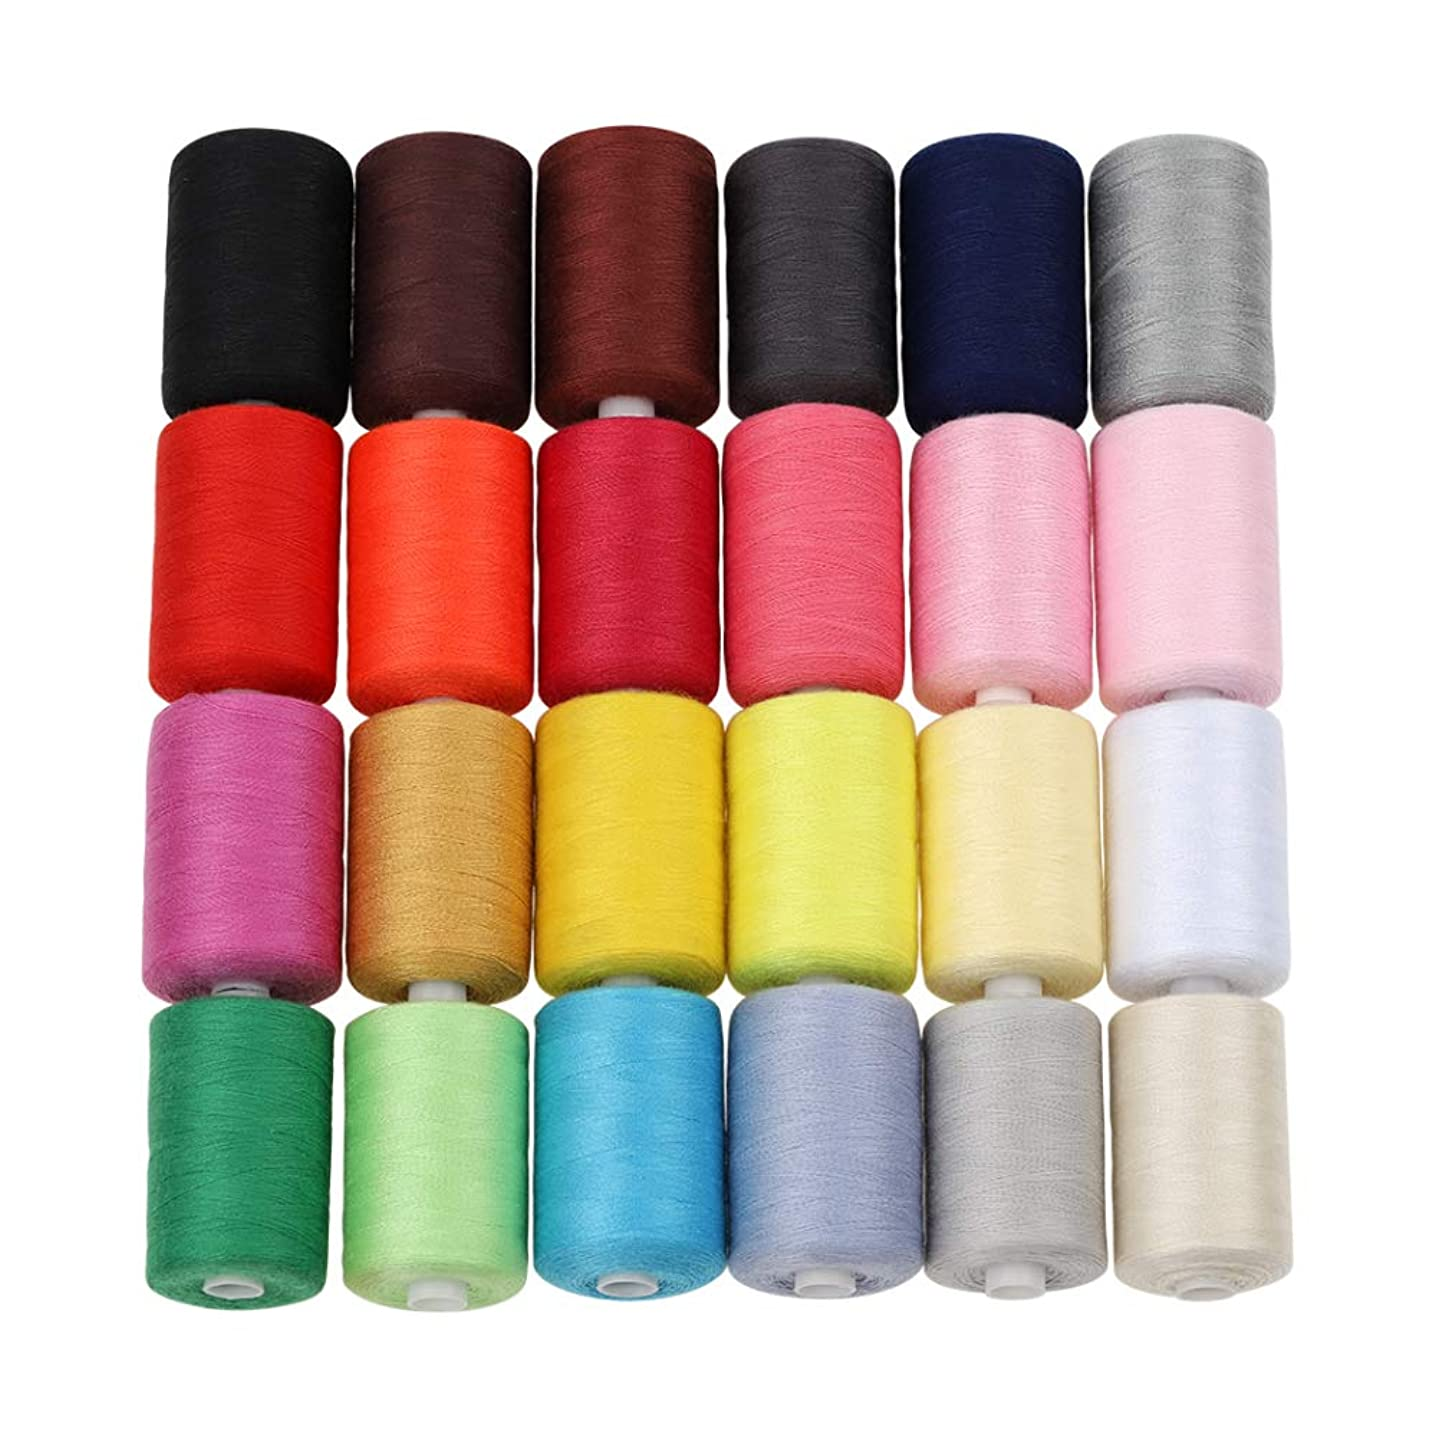 HAITRAL Sewing Thread - 24 Colors 1000 Yards Cotton Thread Sets Spools Thread for Sewing Machine (HT_SK04)